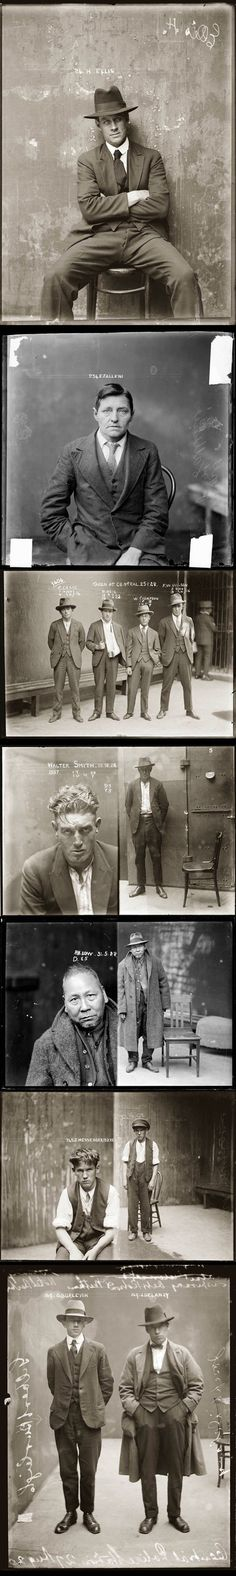 Police mugshots... #profile #police #evidence #bandits #mugshots #thieves #photography #1920s #vintage #criminals #arrest #thugs #crime